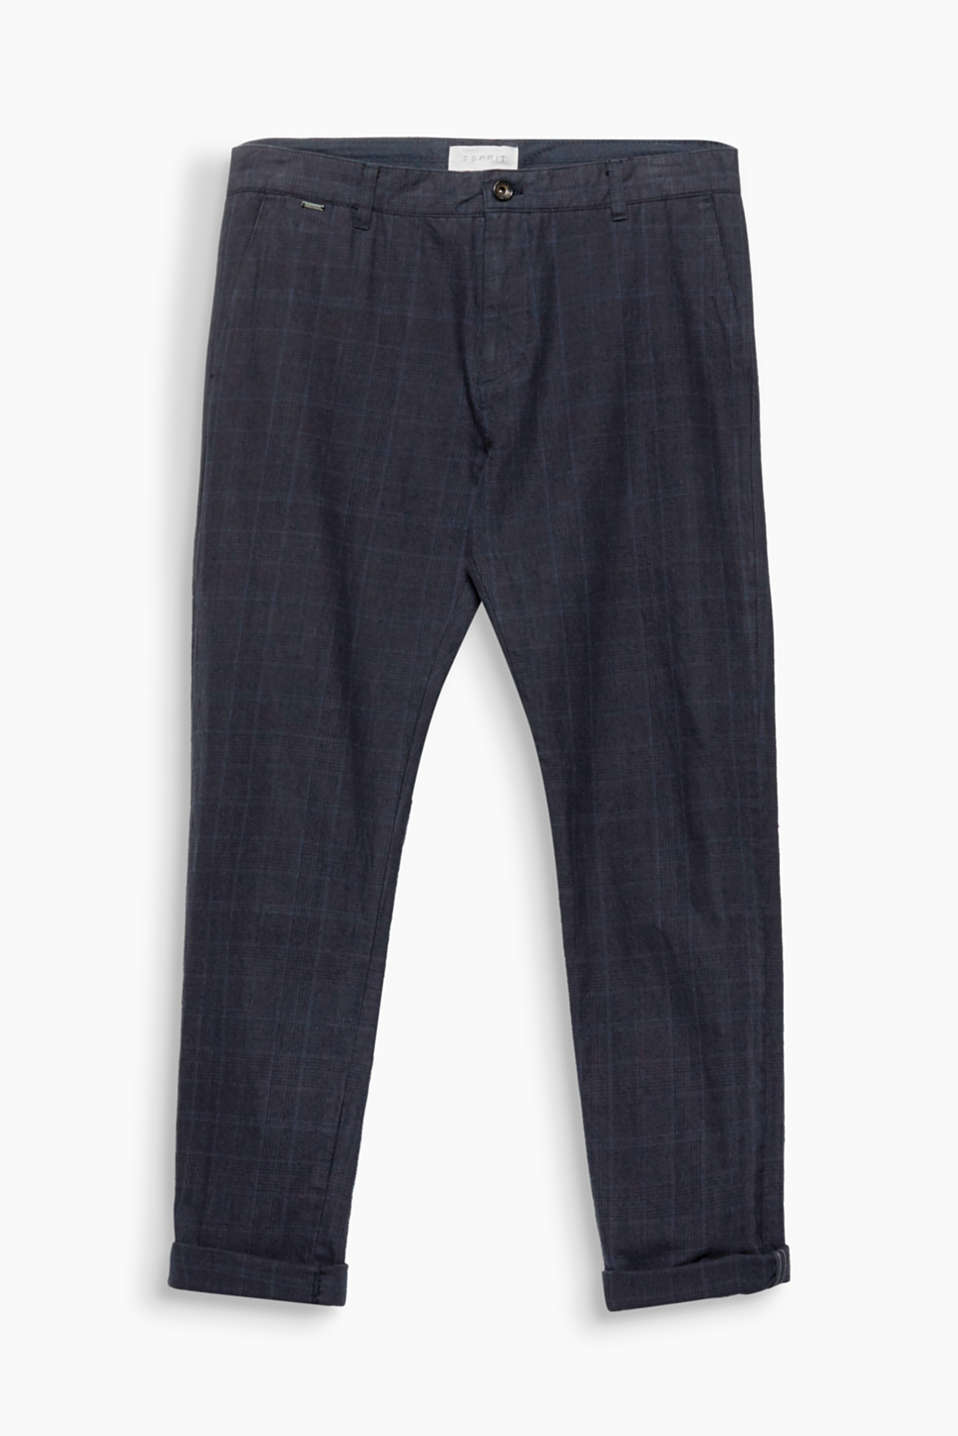 Prince of Wales check in a new look: cool cotton trousers in a slim fit and clean design